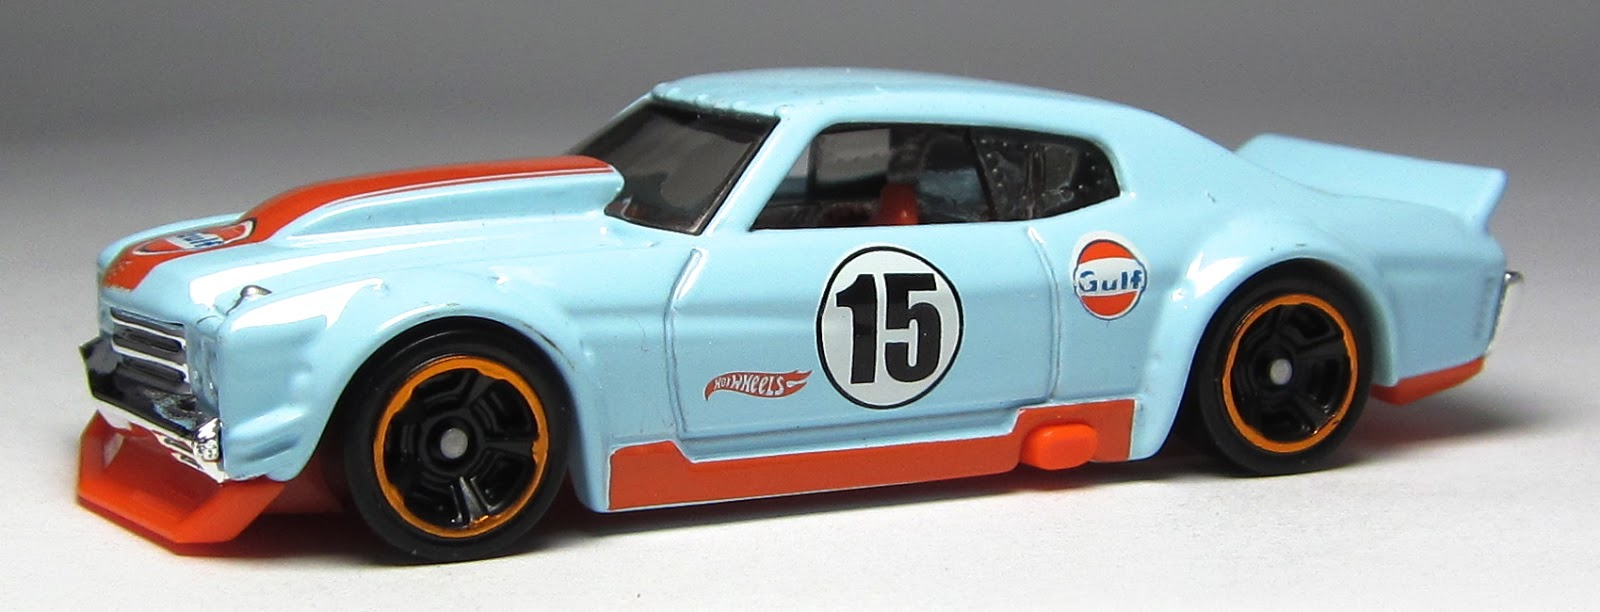 First Look Hot Wheels 1970 Chevrolet Chevelle SS  the Lamley Group